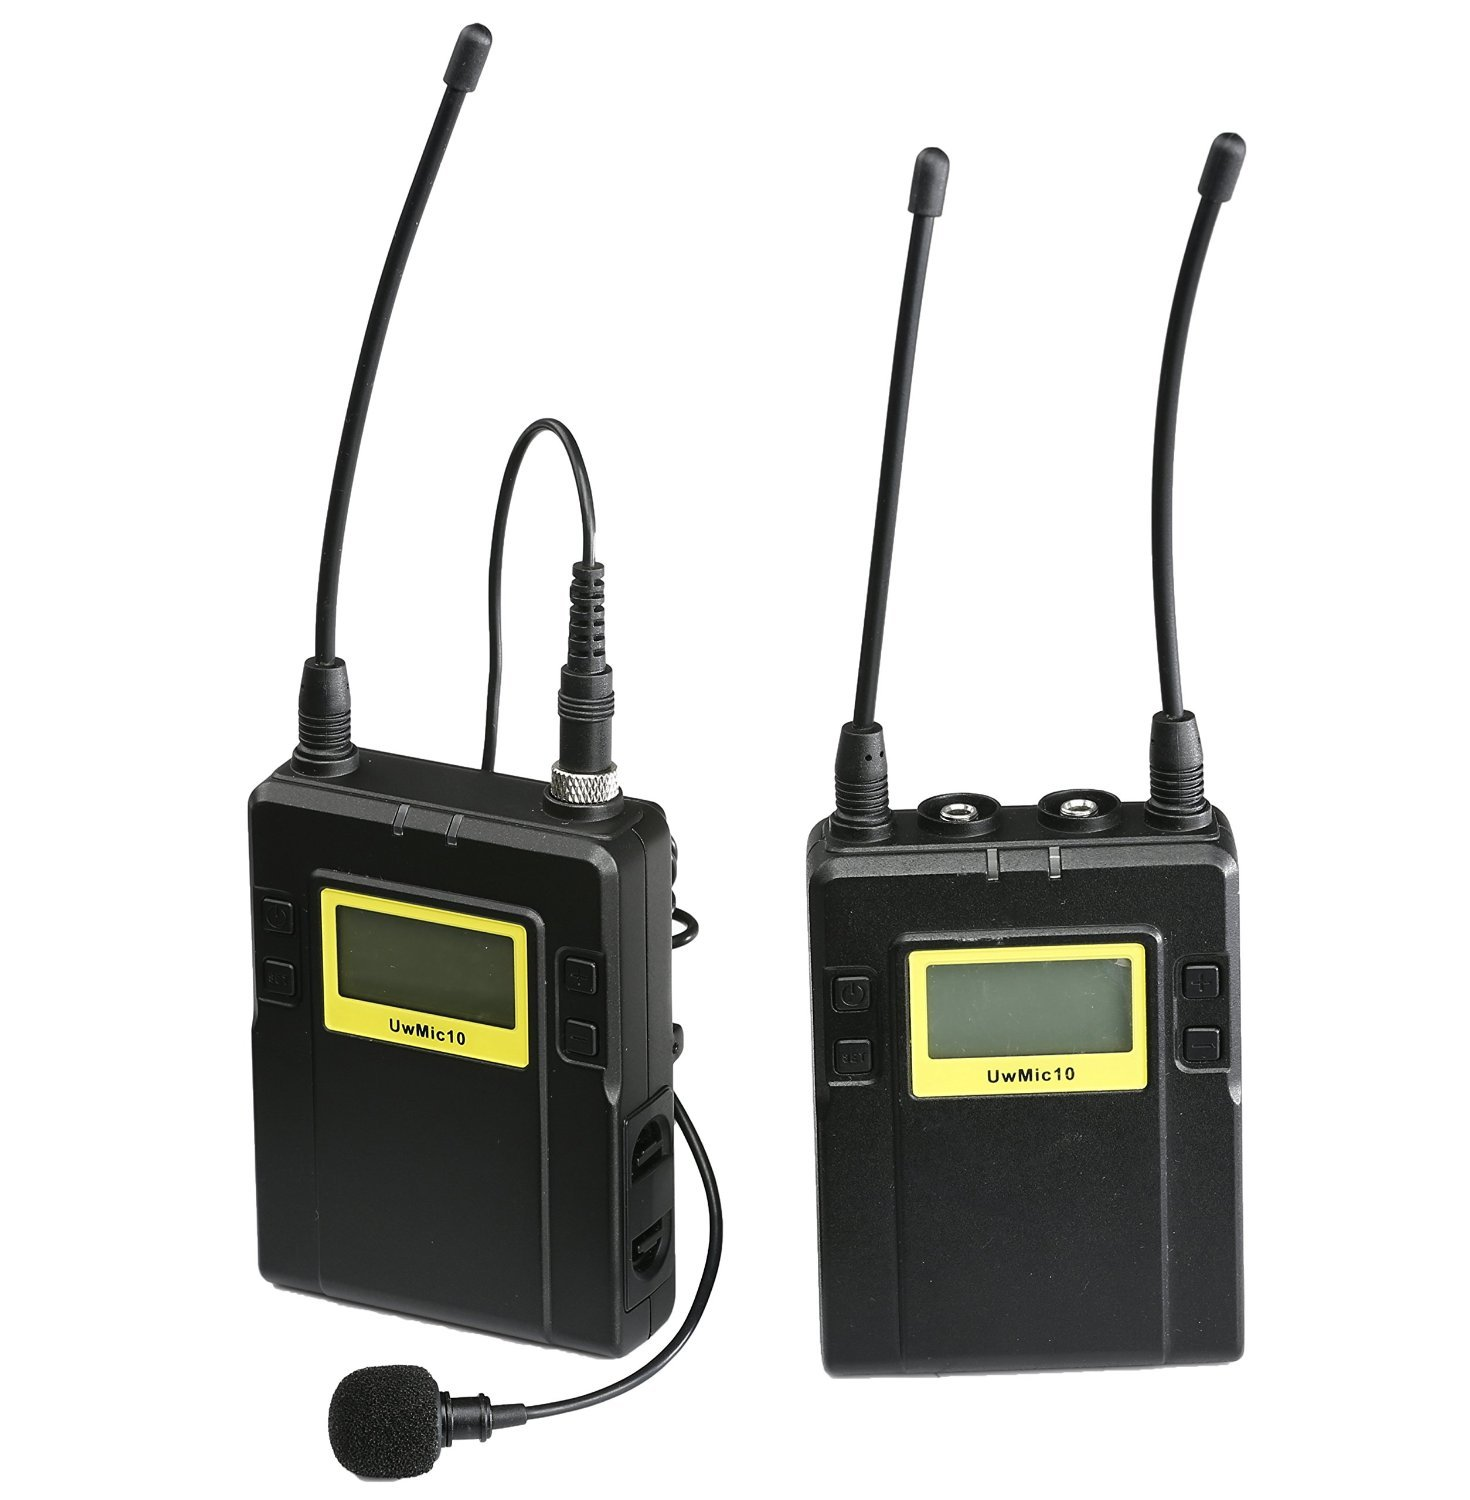 Bodypack Voltage Trolley Daftar Harga Terkini Dan Terlengkap Indonesia Tas 30 Biru 2718bhtn Buy Saramonic Srtrx10 1 96 Channel Digital Uhf Wireless Lavalier Microphone System Online At